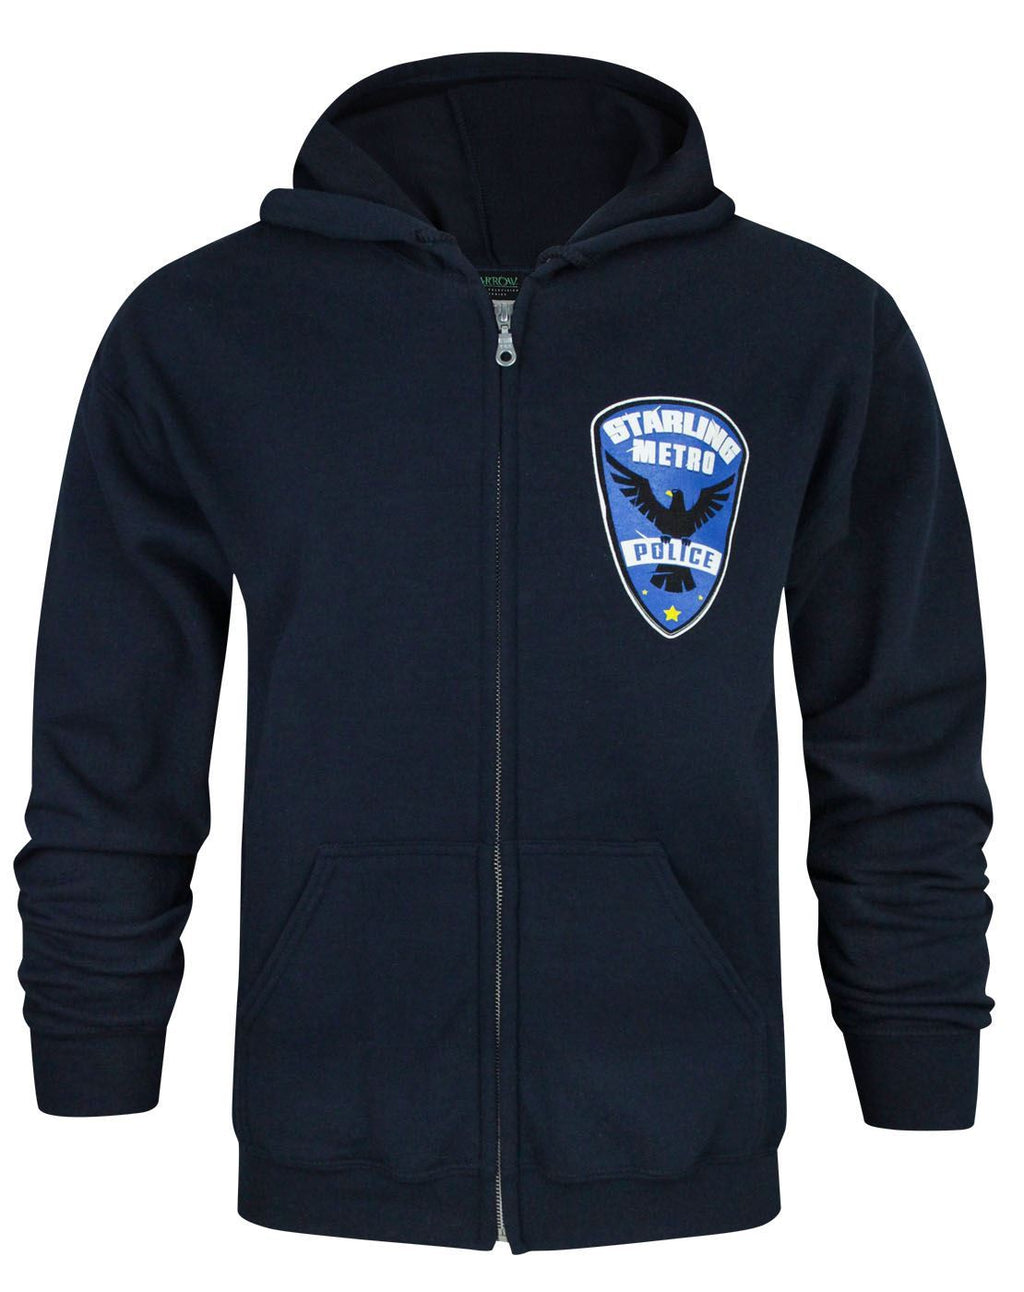 Arrow Starling City Metro Police Men's Zip-Up Hoodie